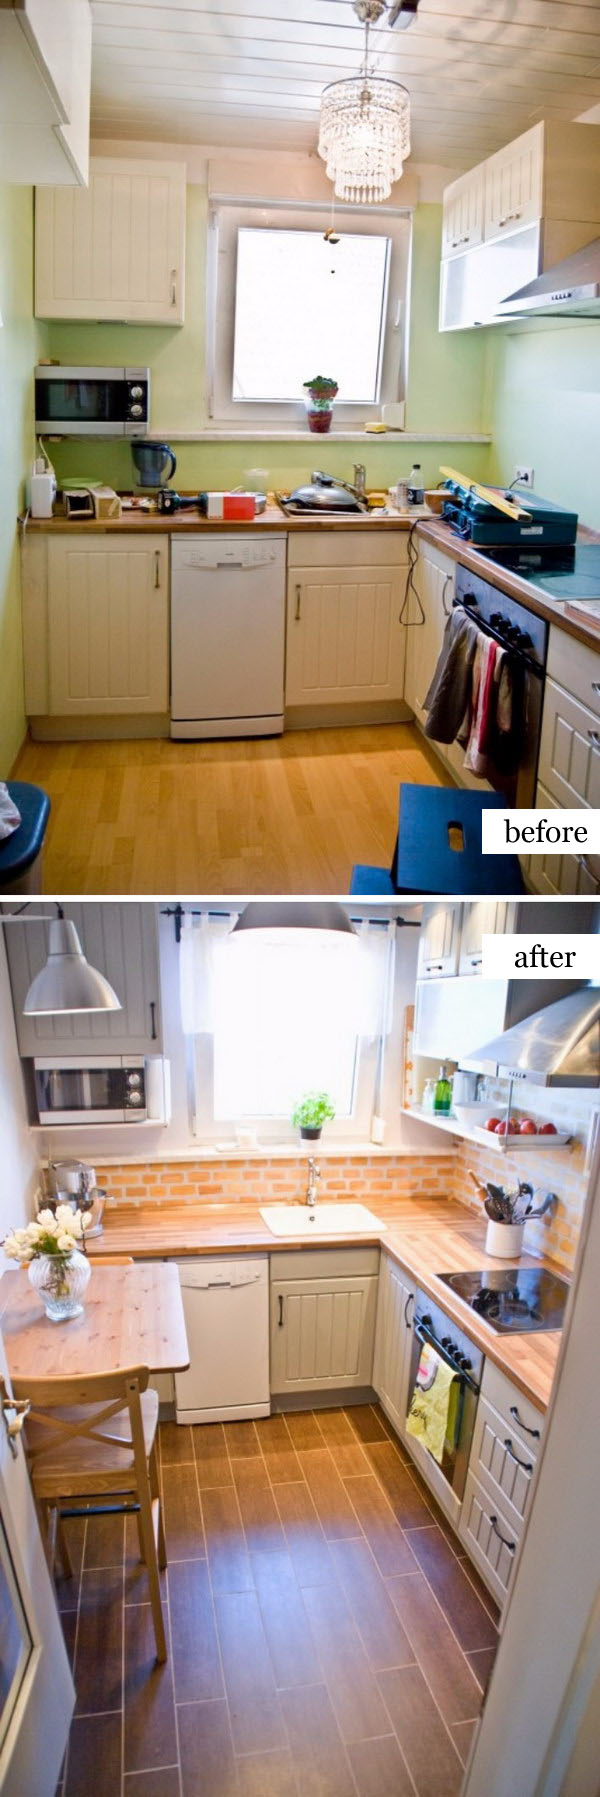 Tiny Kitchen Renovation with Faux Painted Brick Backsplash and Wood Tile Floors.